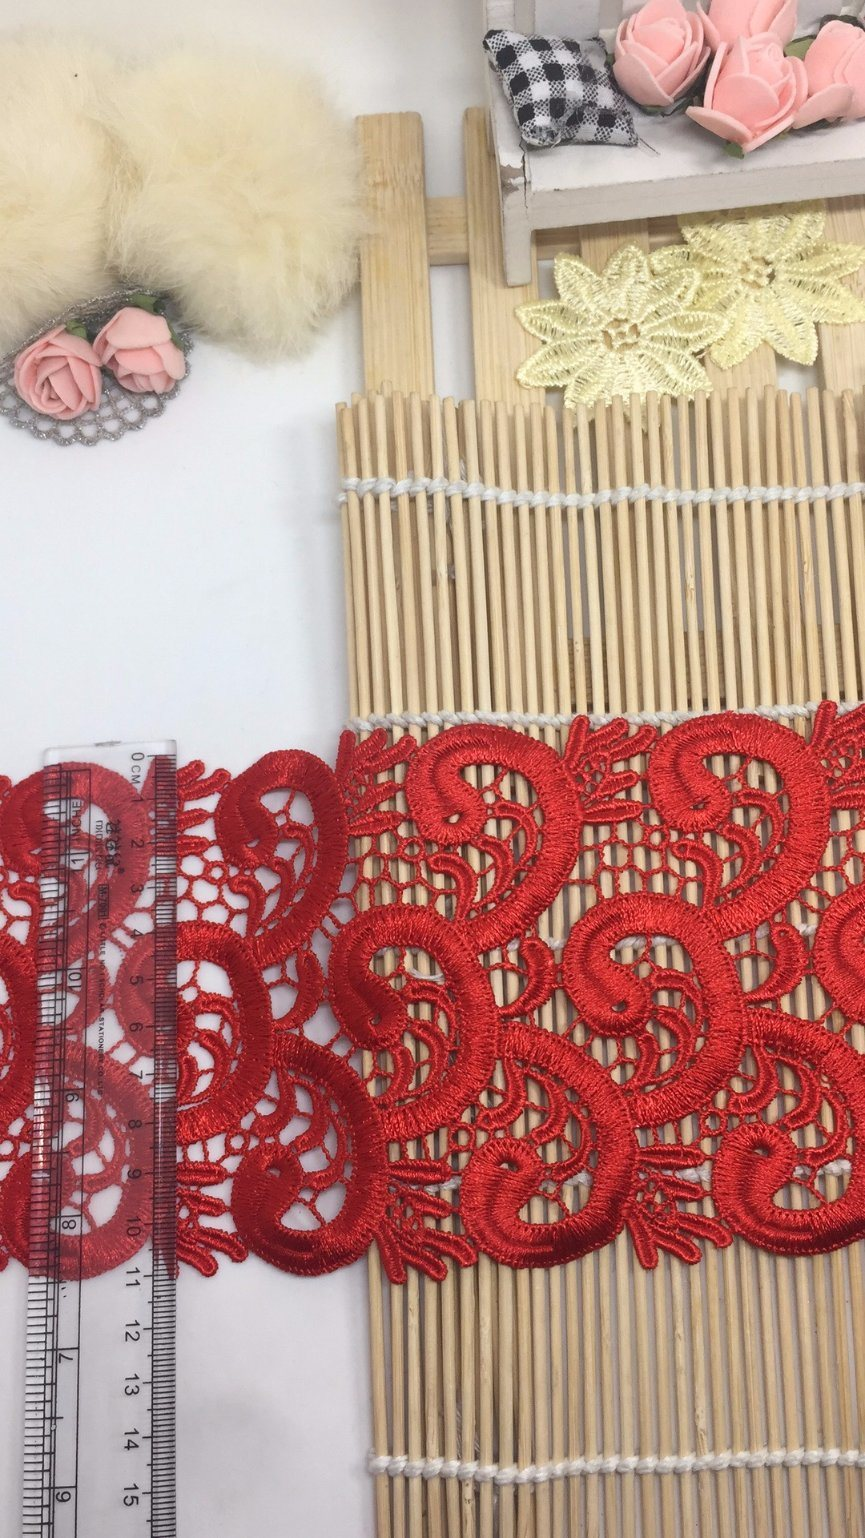 New Design 11cm Width Embroidery Trimming Nylon Polyester Lace for Garments & Home Textiles & Curtains